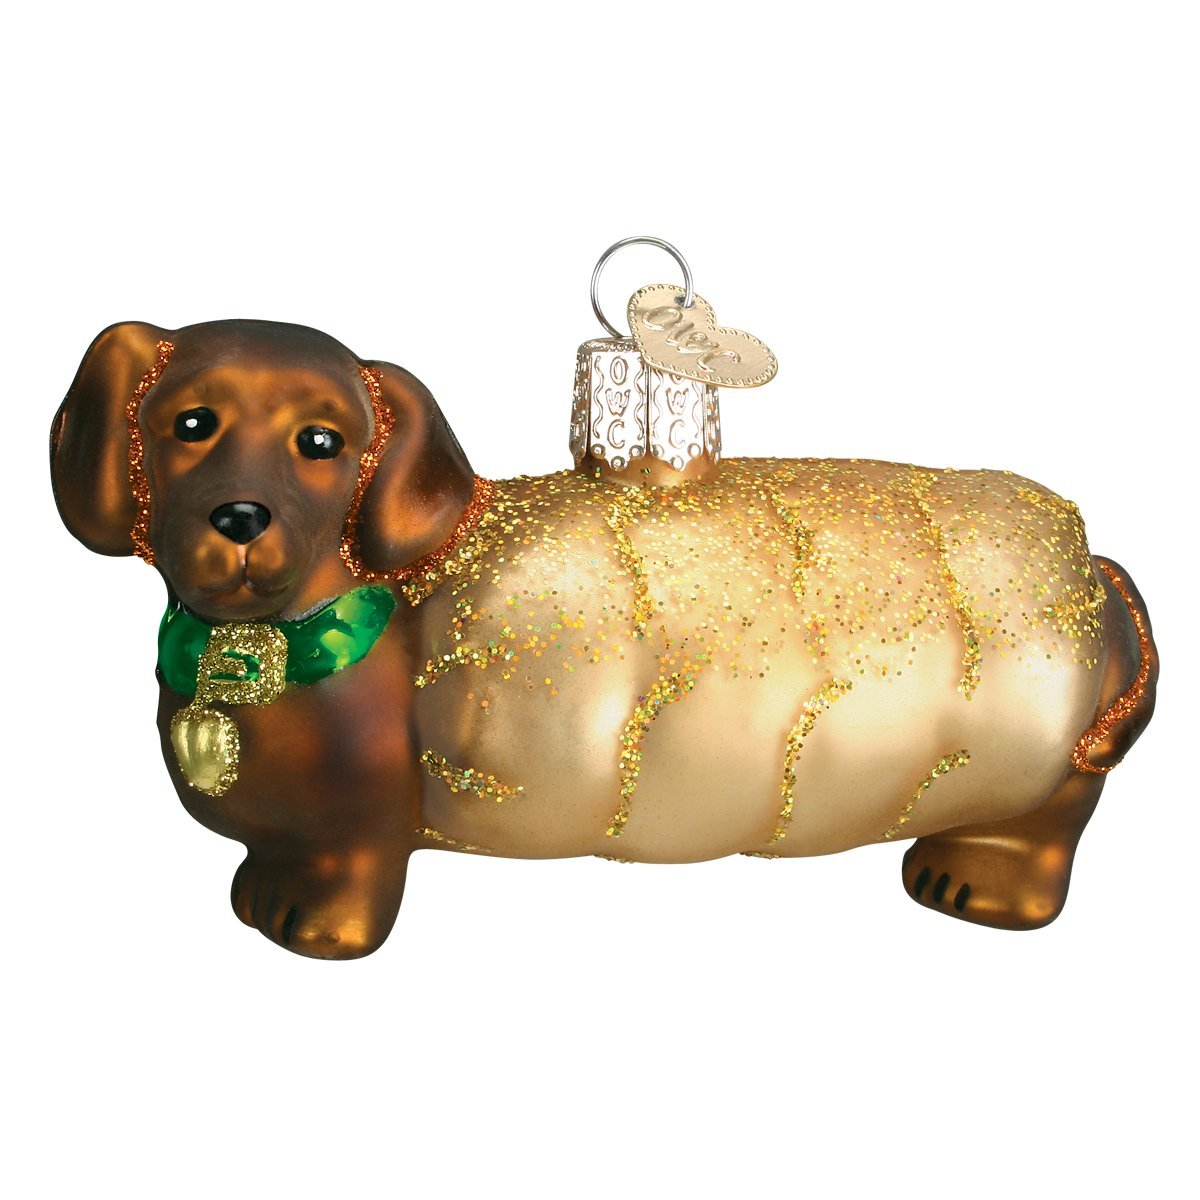 amazoncom old world christmas ornaments wiener dog glass blown ornaments for christmas tree home kitchen